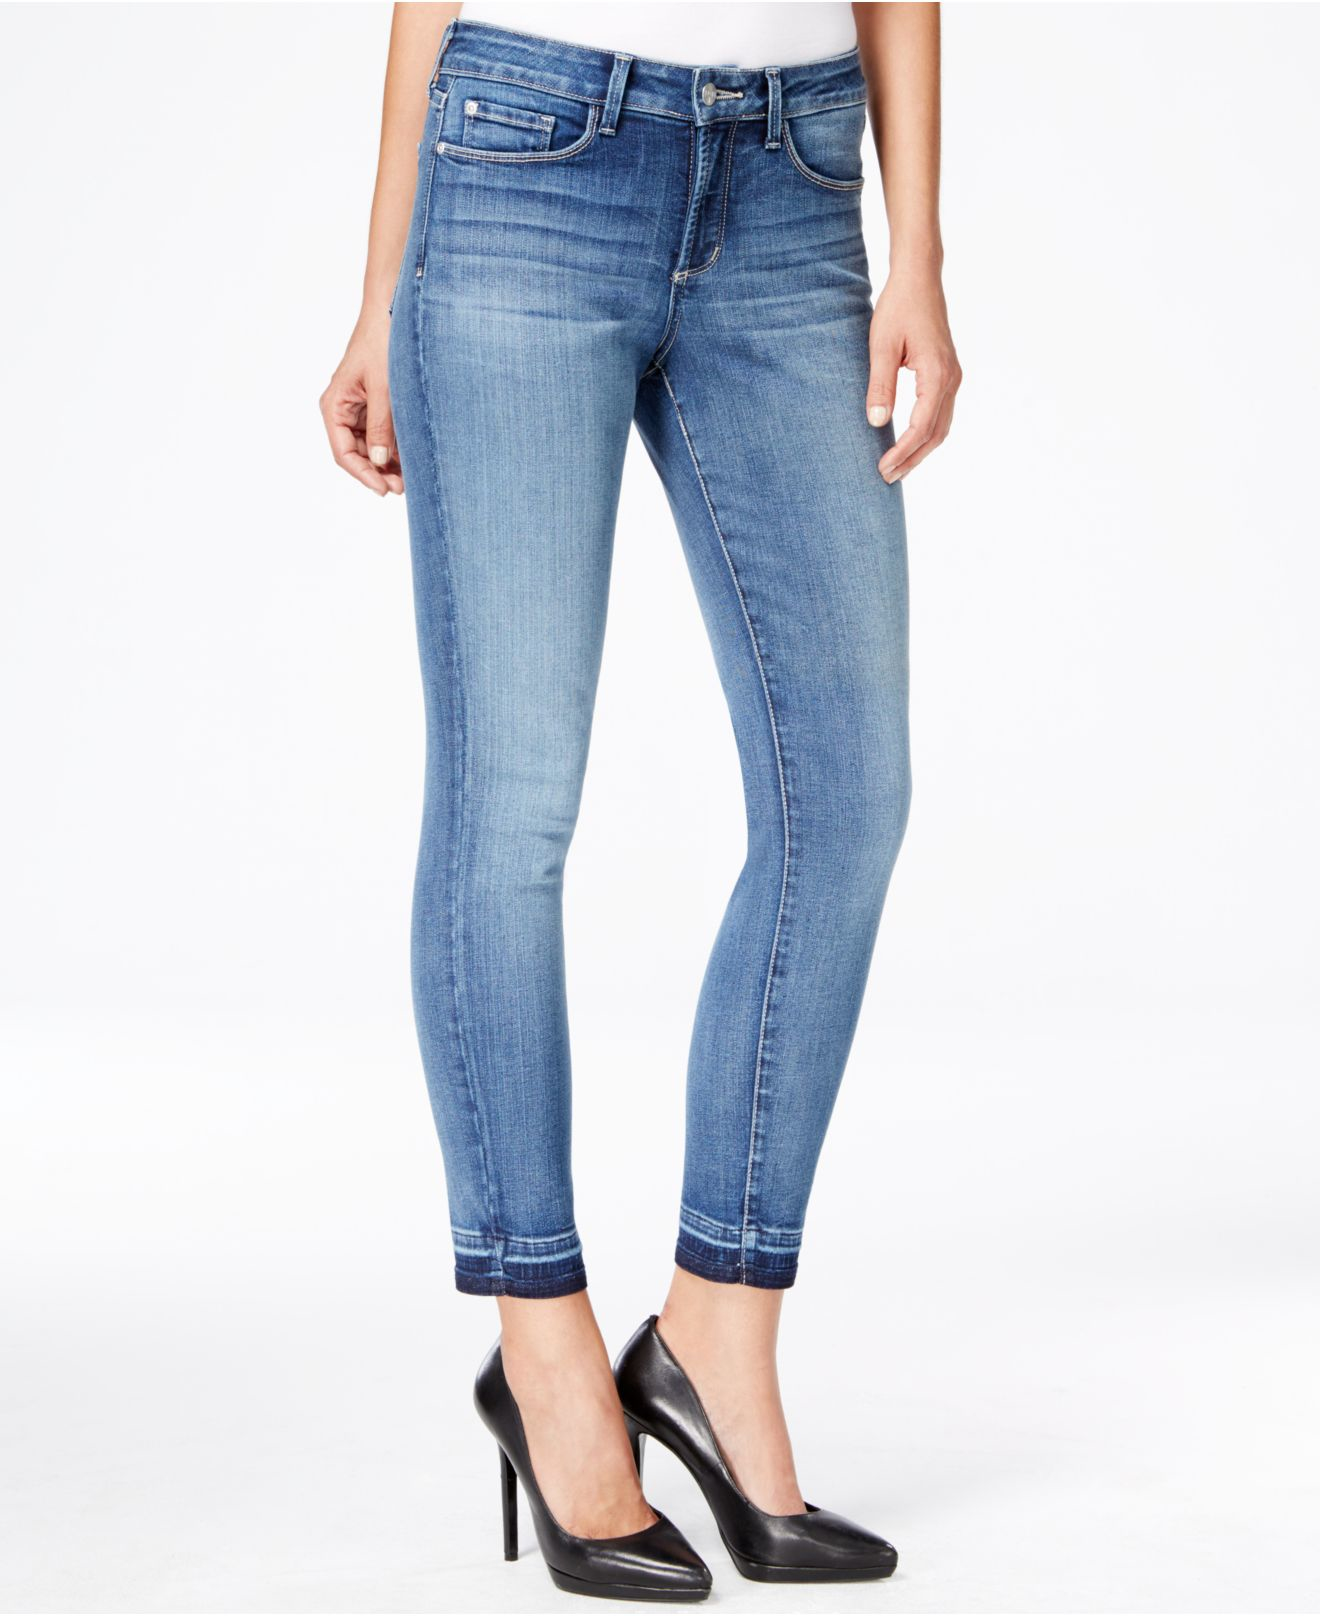 ASOS DESIGN Petite Ridley ankle grazer jeans in lily wash. £ ASOS DESIGN petite crop kick flare jeans in mono check print. £ Noisy May Ankle Length High Waist Skinny Jeans. £ ASOS DESIGN Ritson rigid mom jeans in abstract leopard print. £ Only Petite asymmetric hem mom jean.